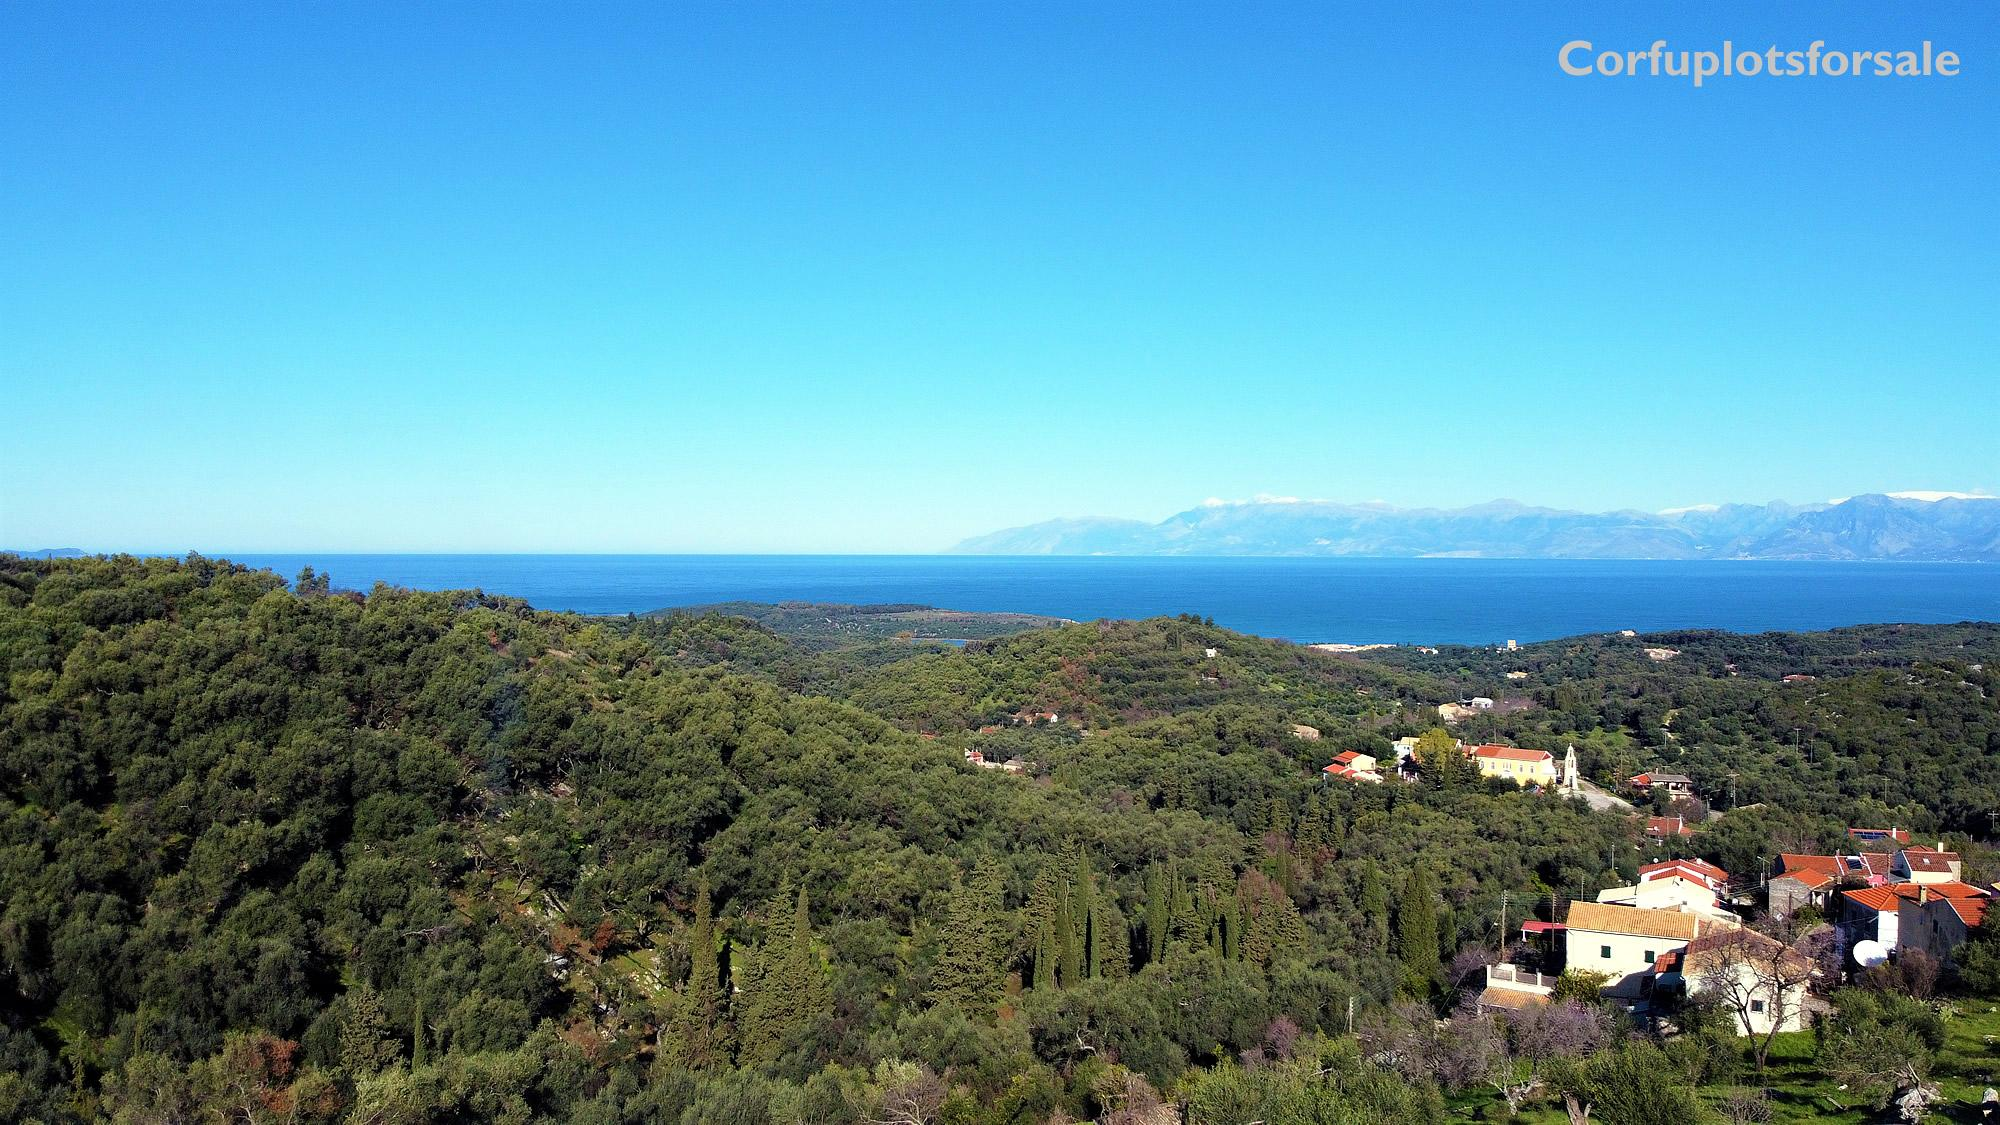 Plot in the settlement of Perithia with clear panoramic view